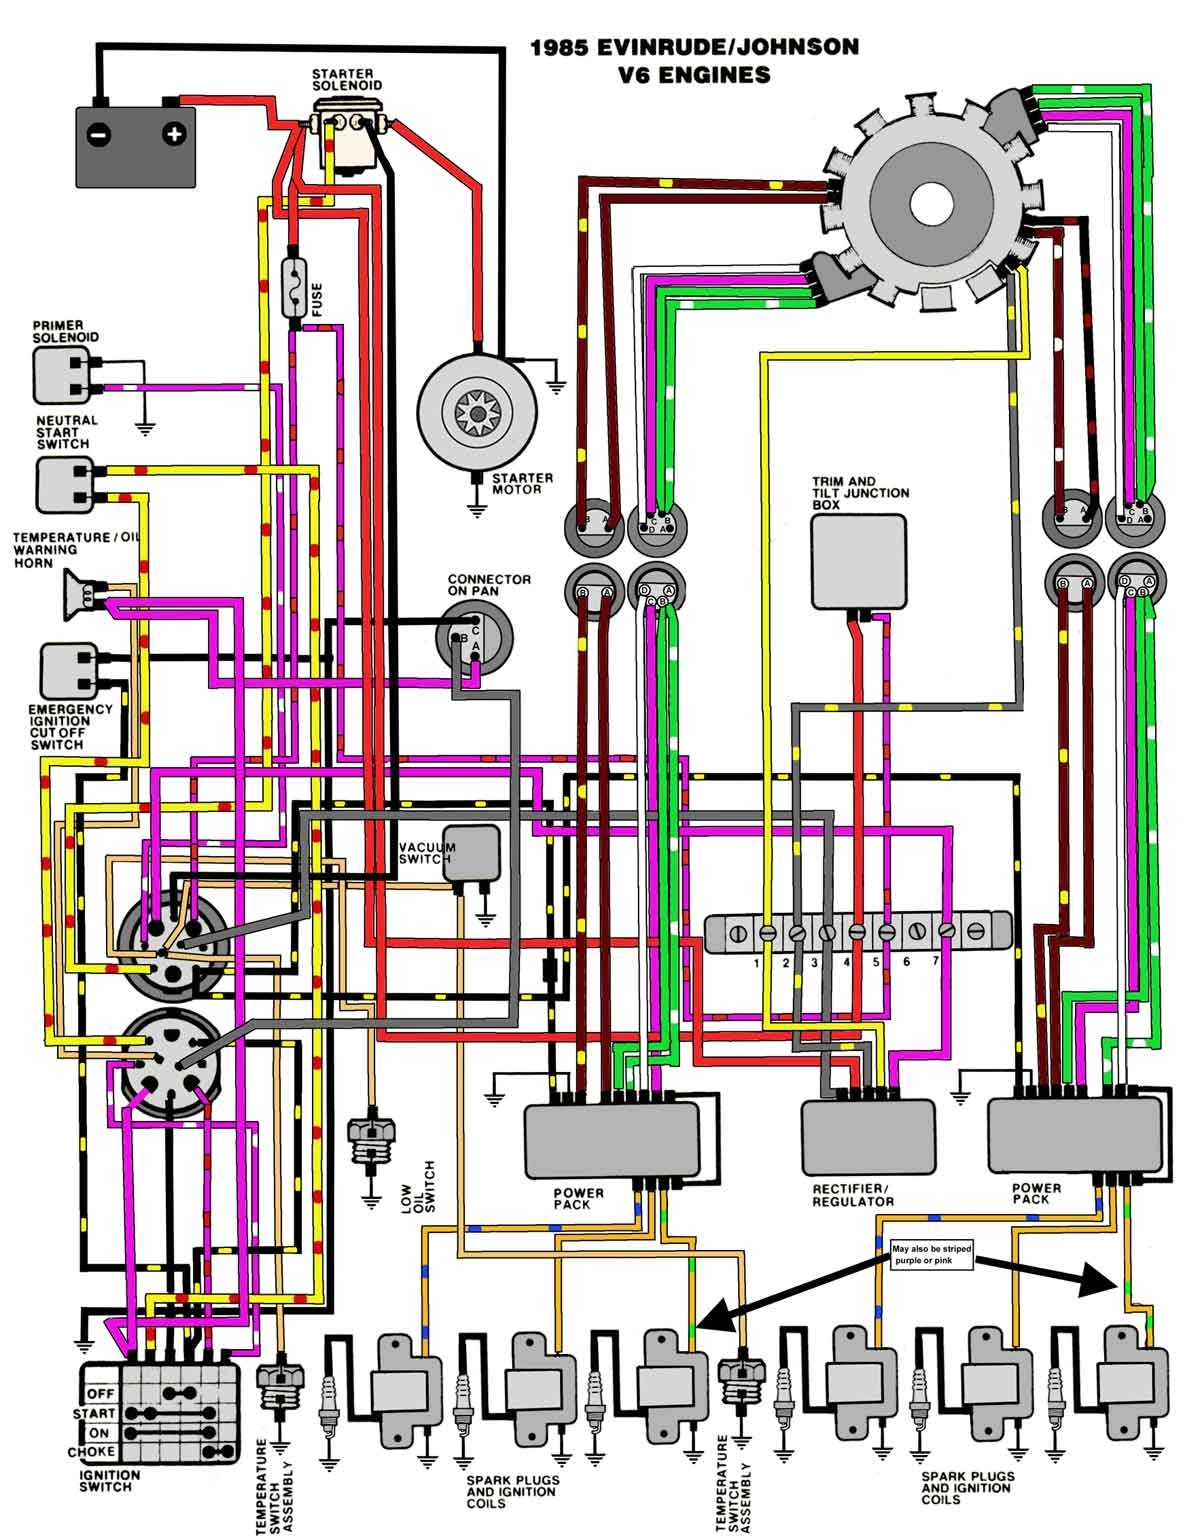 mastertech marine evinrude johnson outboard wiring diagrams in 70 hp evinrude wiring diagram?resize\\\\\\\=665%2C853\\\\\\\&ssl\\\\\\\=1 hp wiring diagram hp wiring diagram for pavilion \u2022 indy500 co Johnson Ignition Switch Wiring Diagram at bayanpartner.co